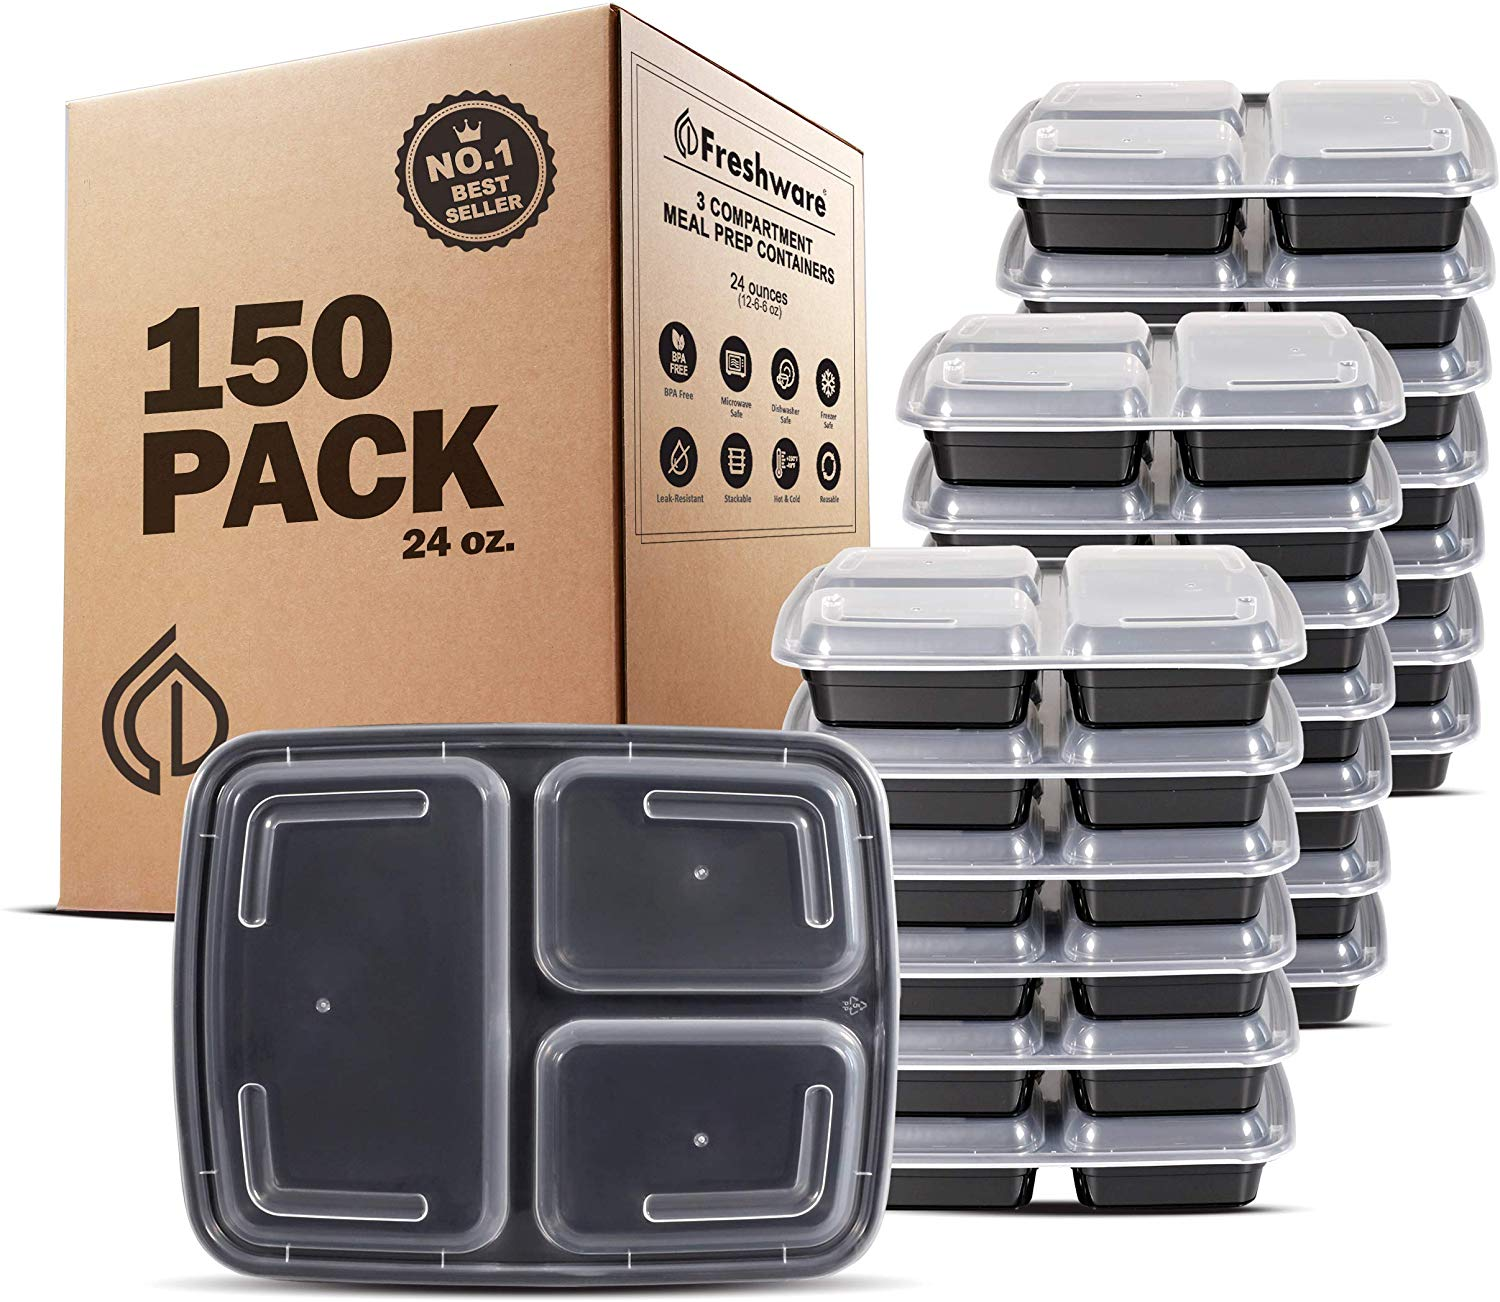 Freshware Meal Prep Containers [150 Pack] 3 Compartment with Lids, Food Storage Containers, Bento Box | BPA Free | Stackable | Microwave/Dishwasher/Freezer Safe, Portion Control, 21 Day Fix (24 oz)